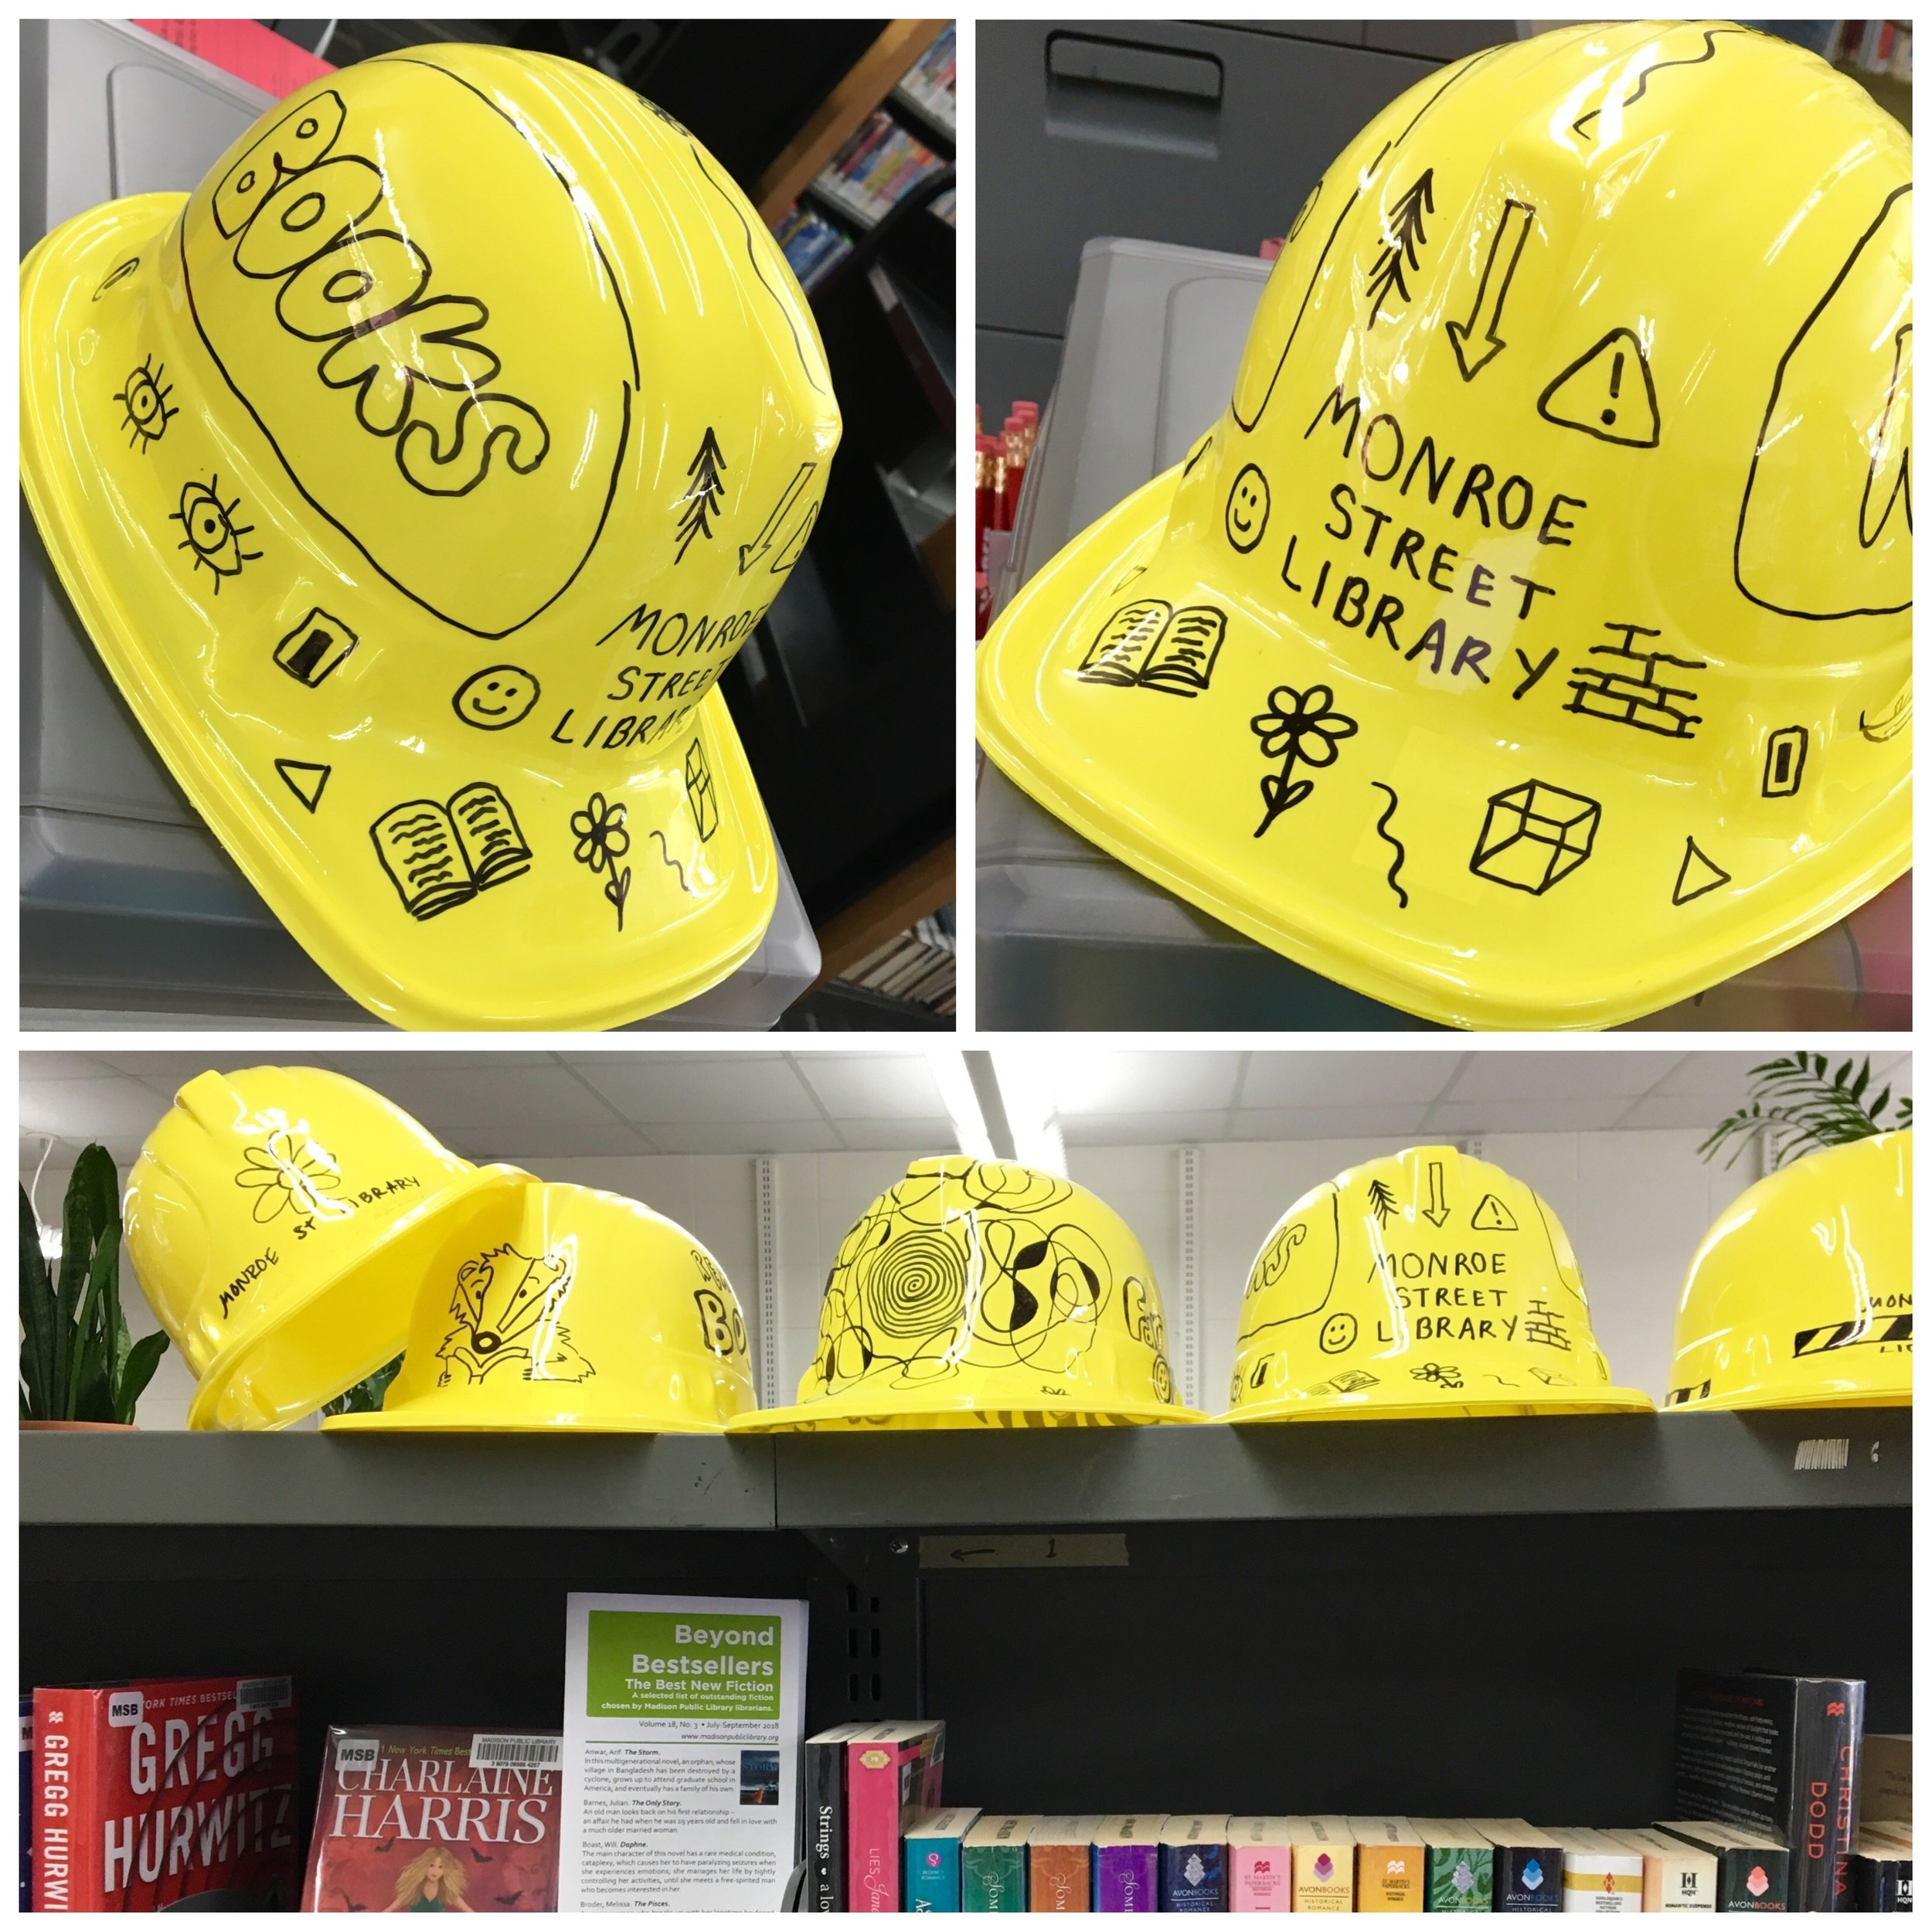 Hard Hat Club Library Collage - 1.jpg